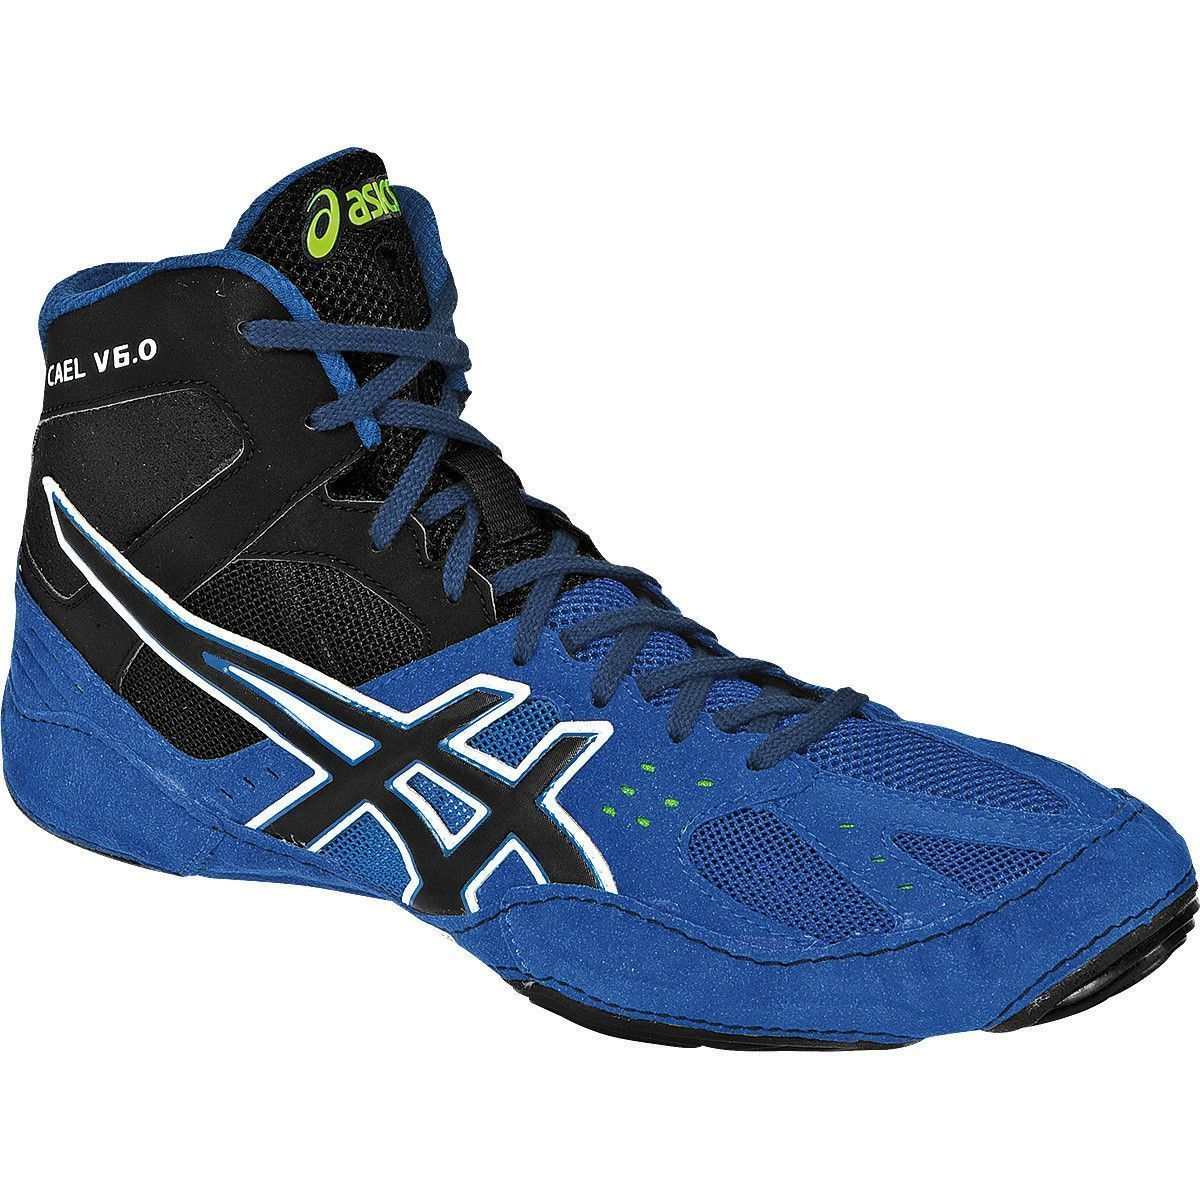 Asics Cael V6 0 With Images Wrestling Shoes Asics Wrestling